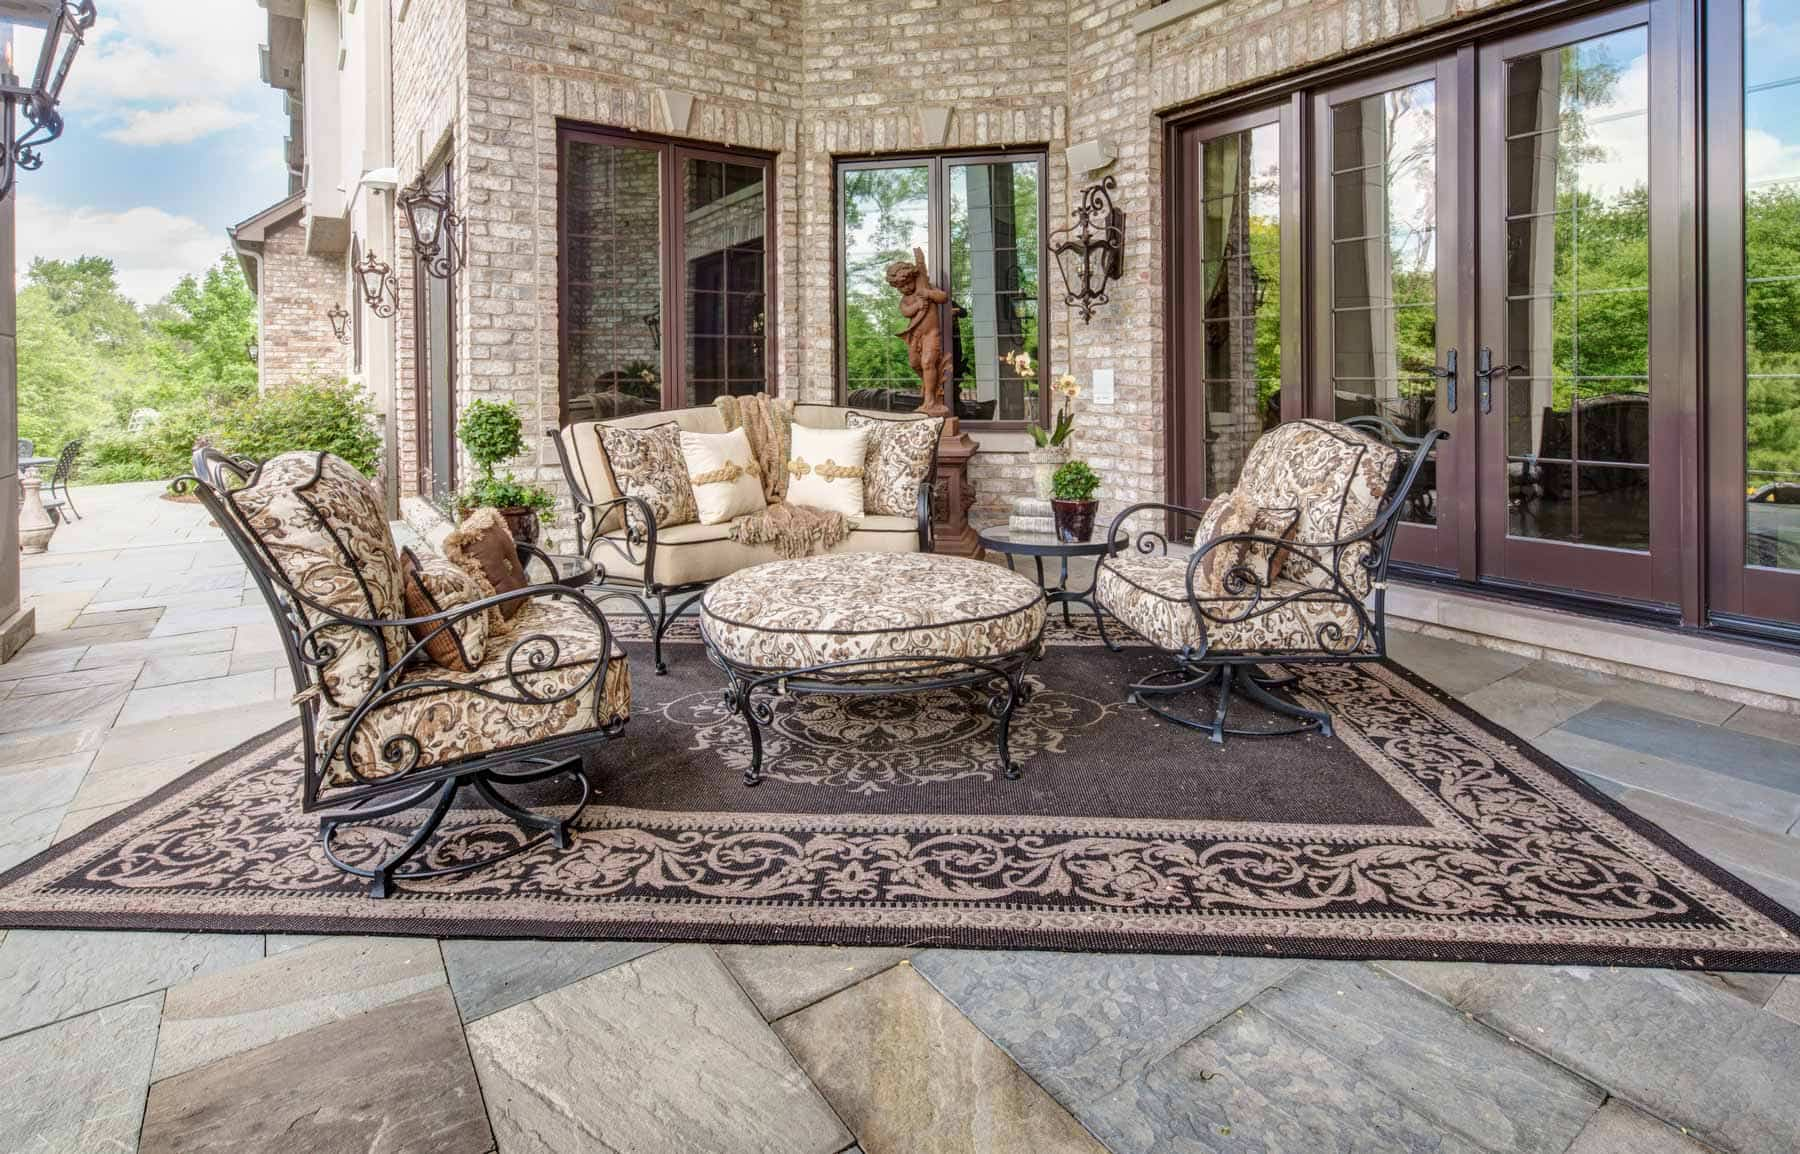 Outdoor patio furniture linly designs for Patio furniture designs plans